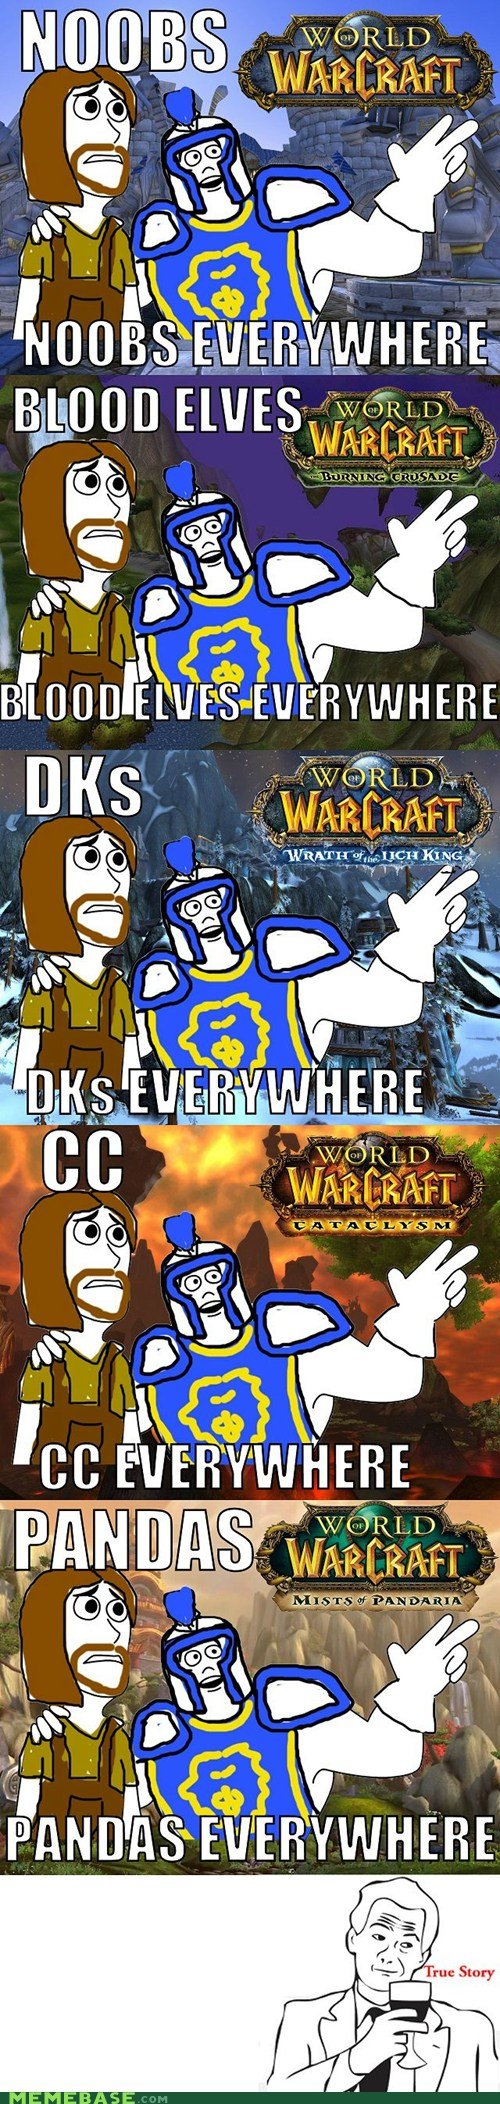 Video Games World Of Warcraft For Dummies Memebase Funny Memes